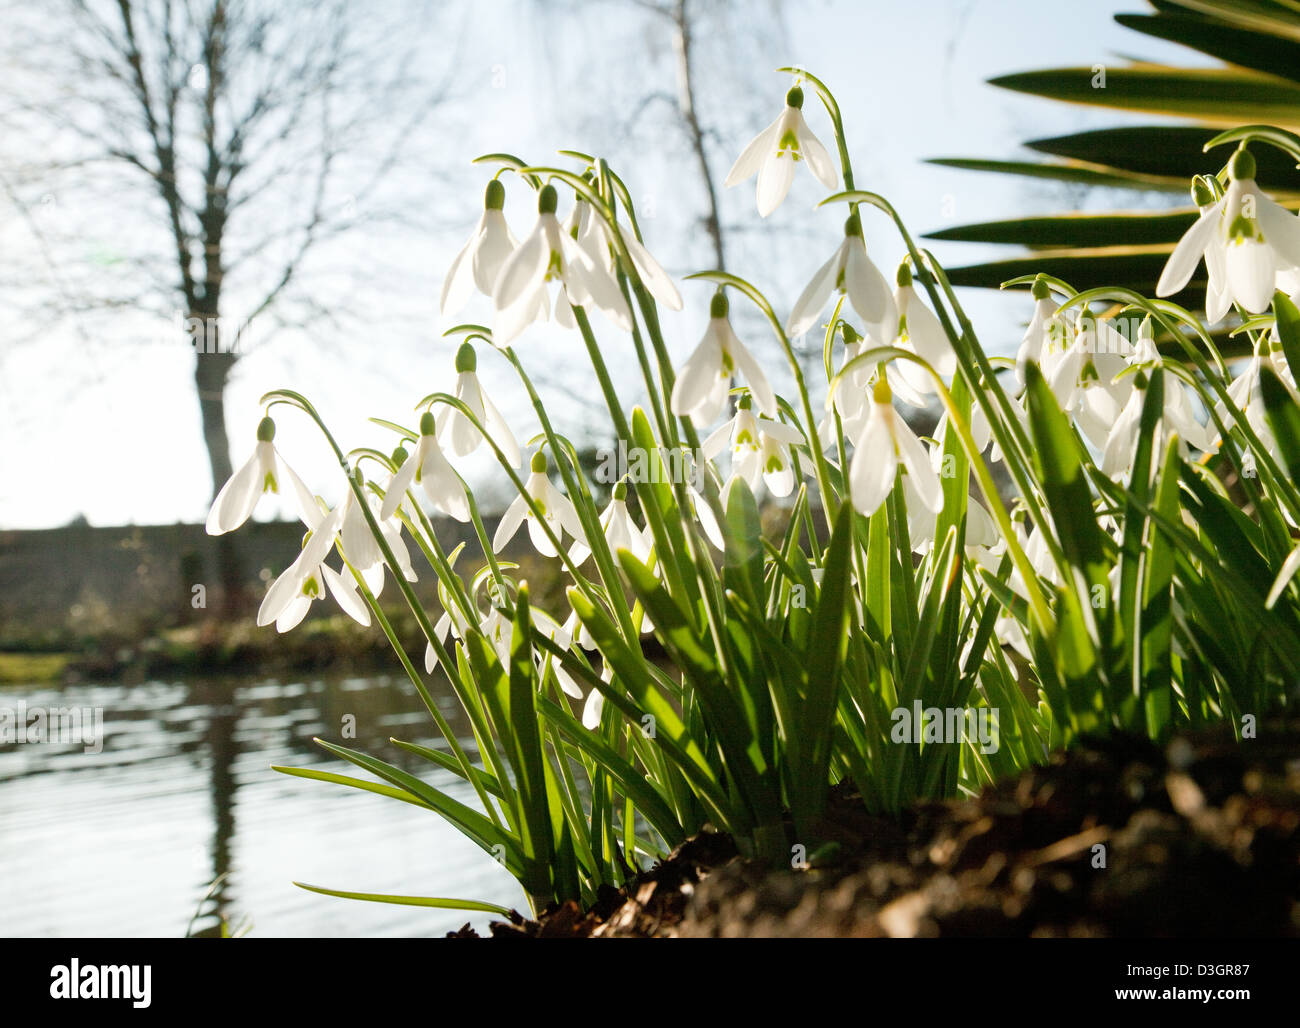 Snowdrops - snowdrop flowers flowering by water in February, spring UK - Stock Image